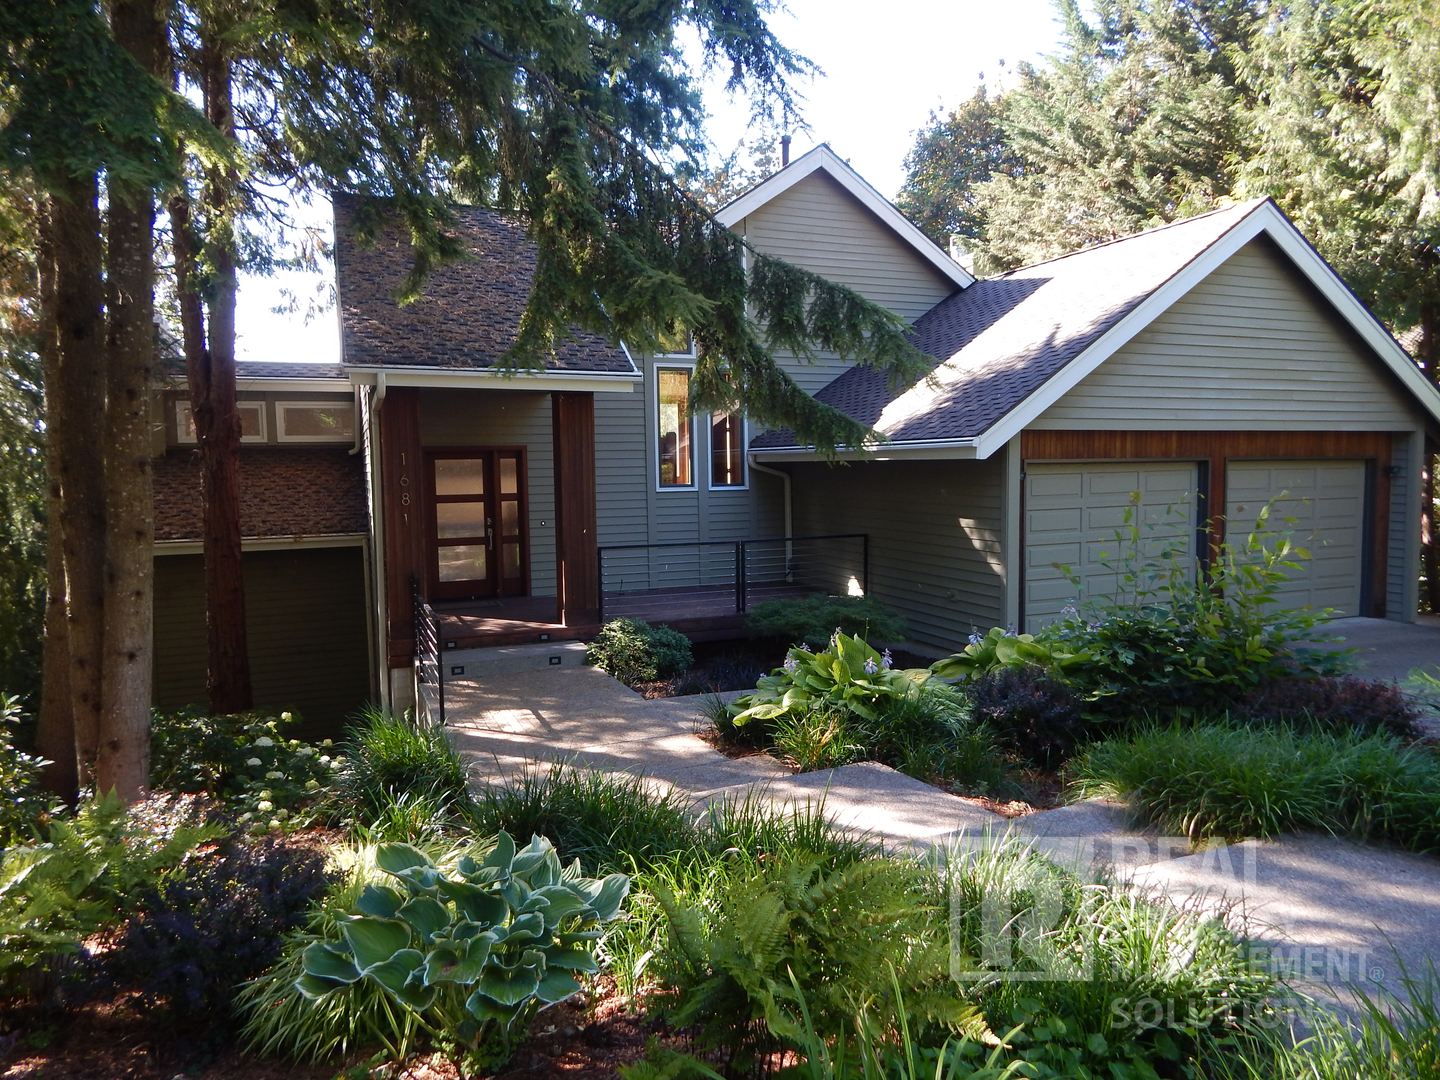 House for Rent in Lake Oswego